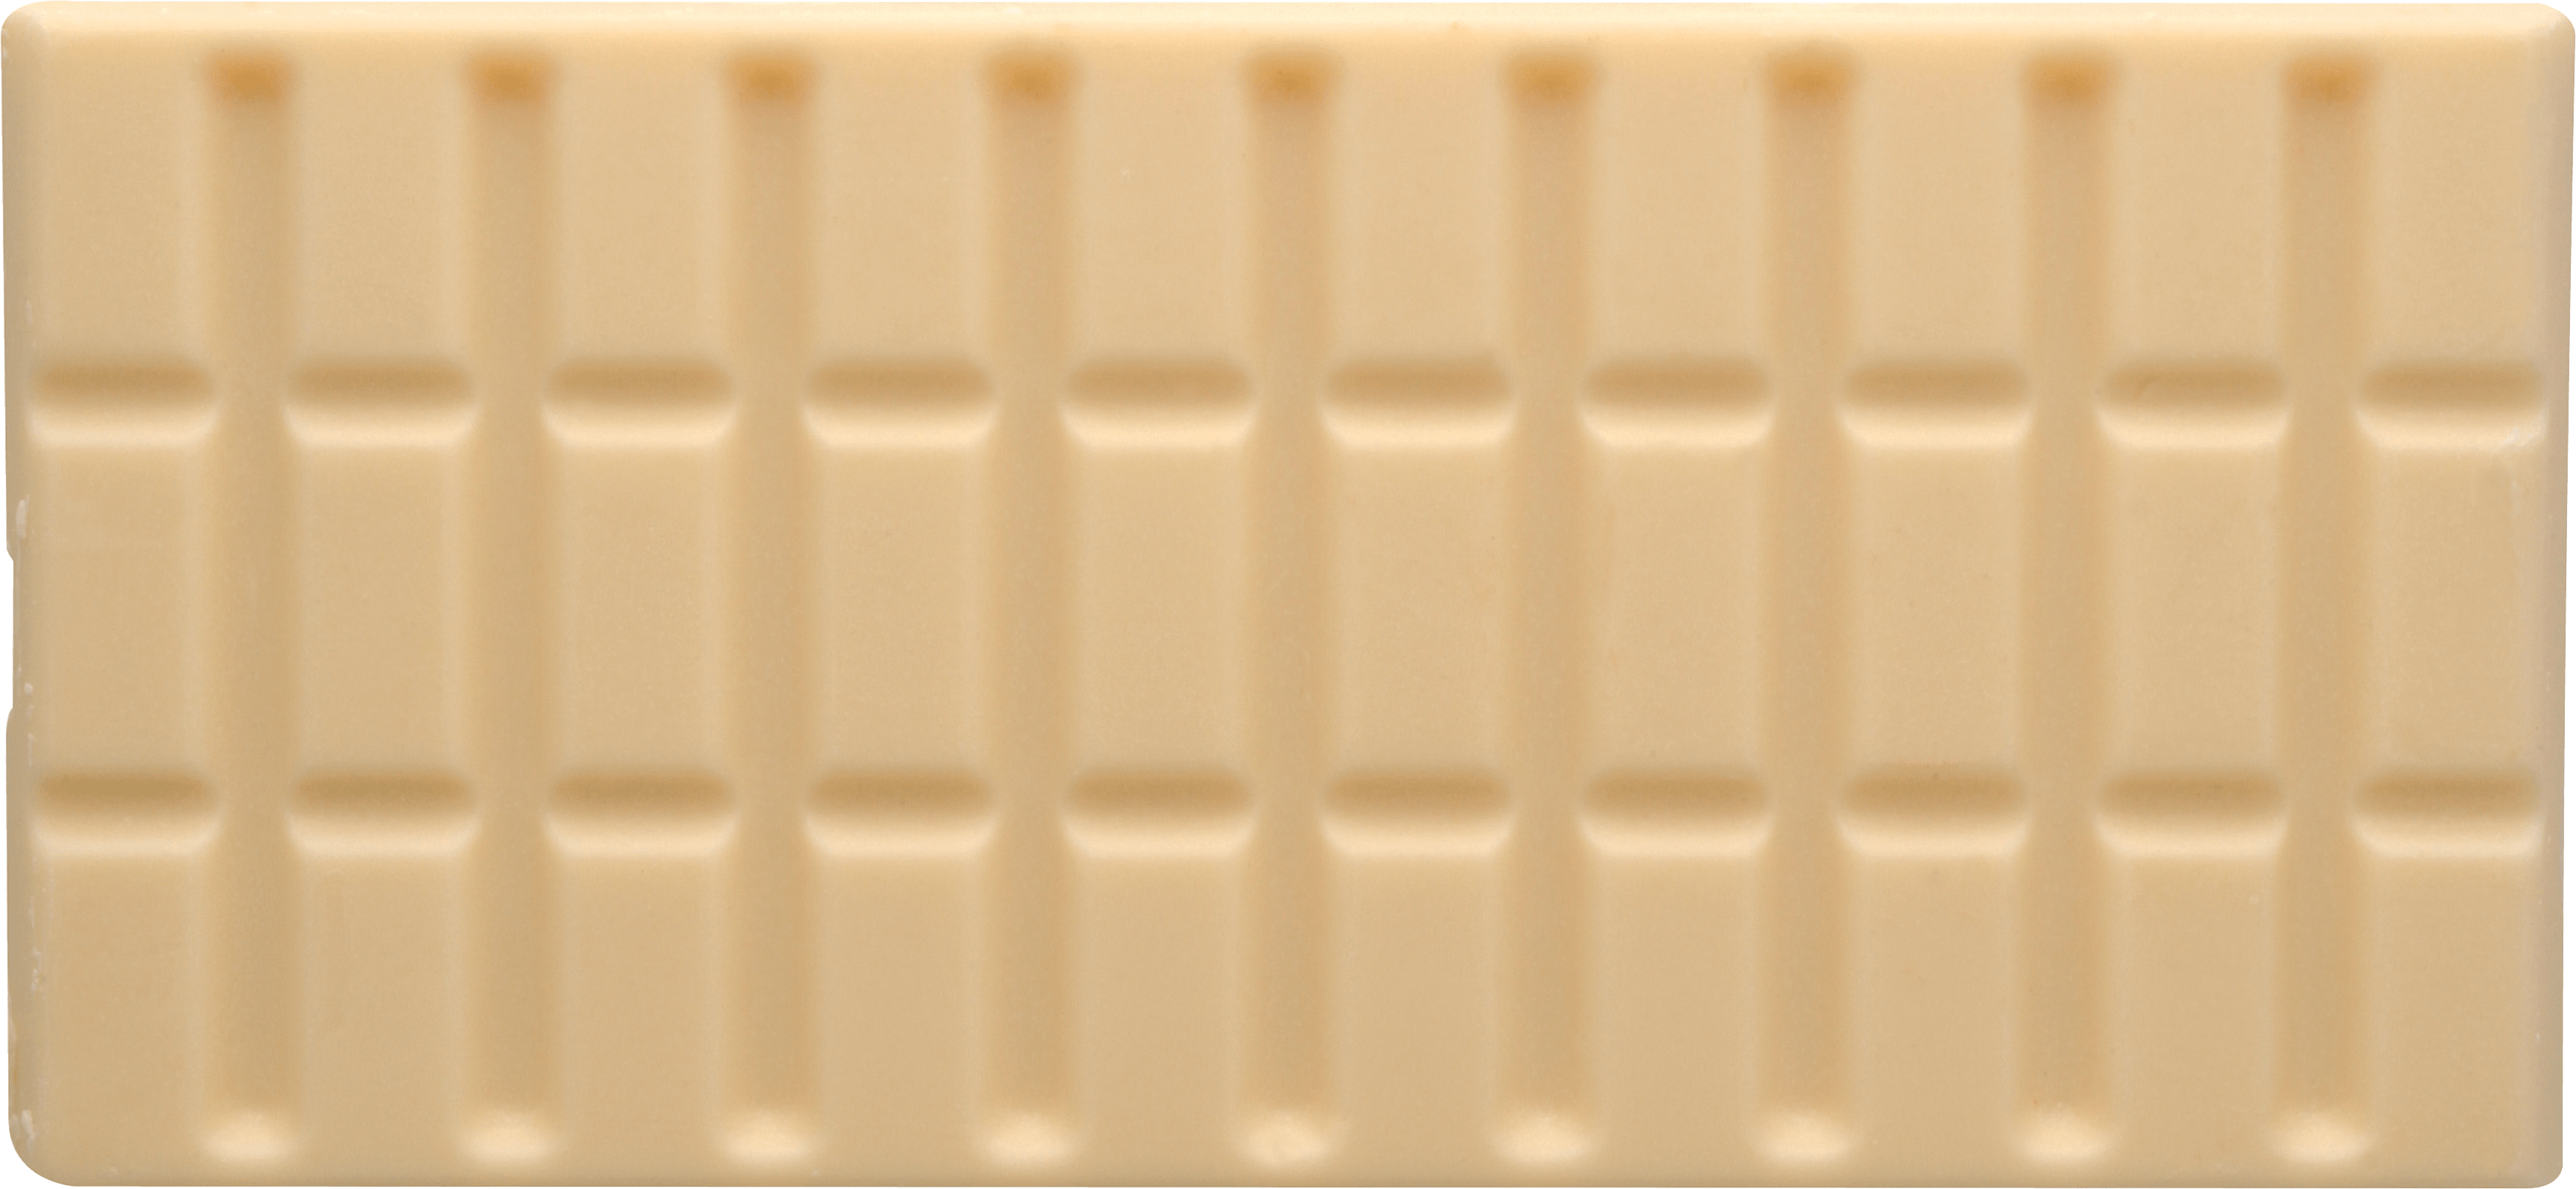 White Chocolate Bar Png Image PNG Image